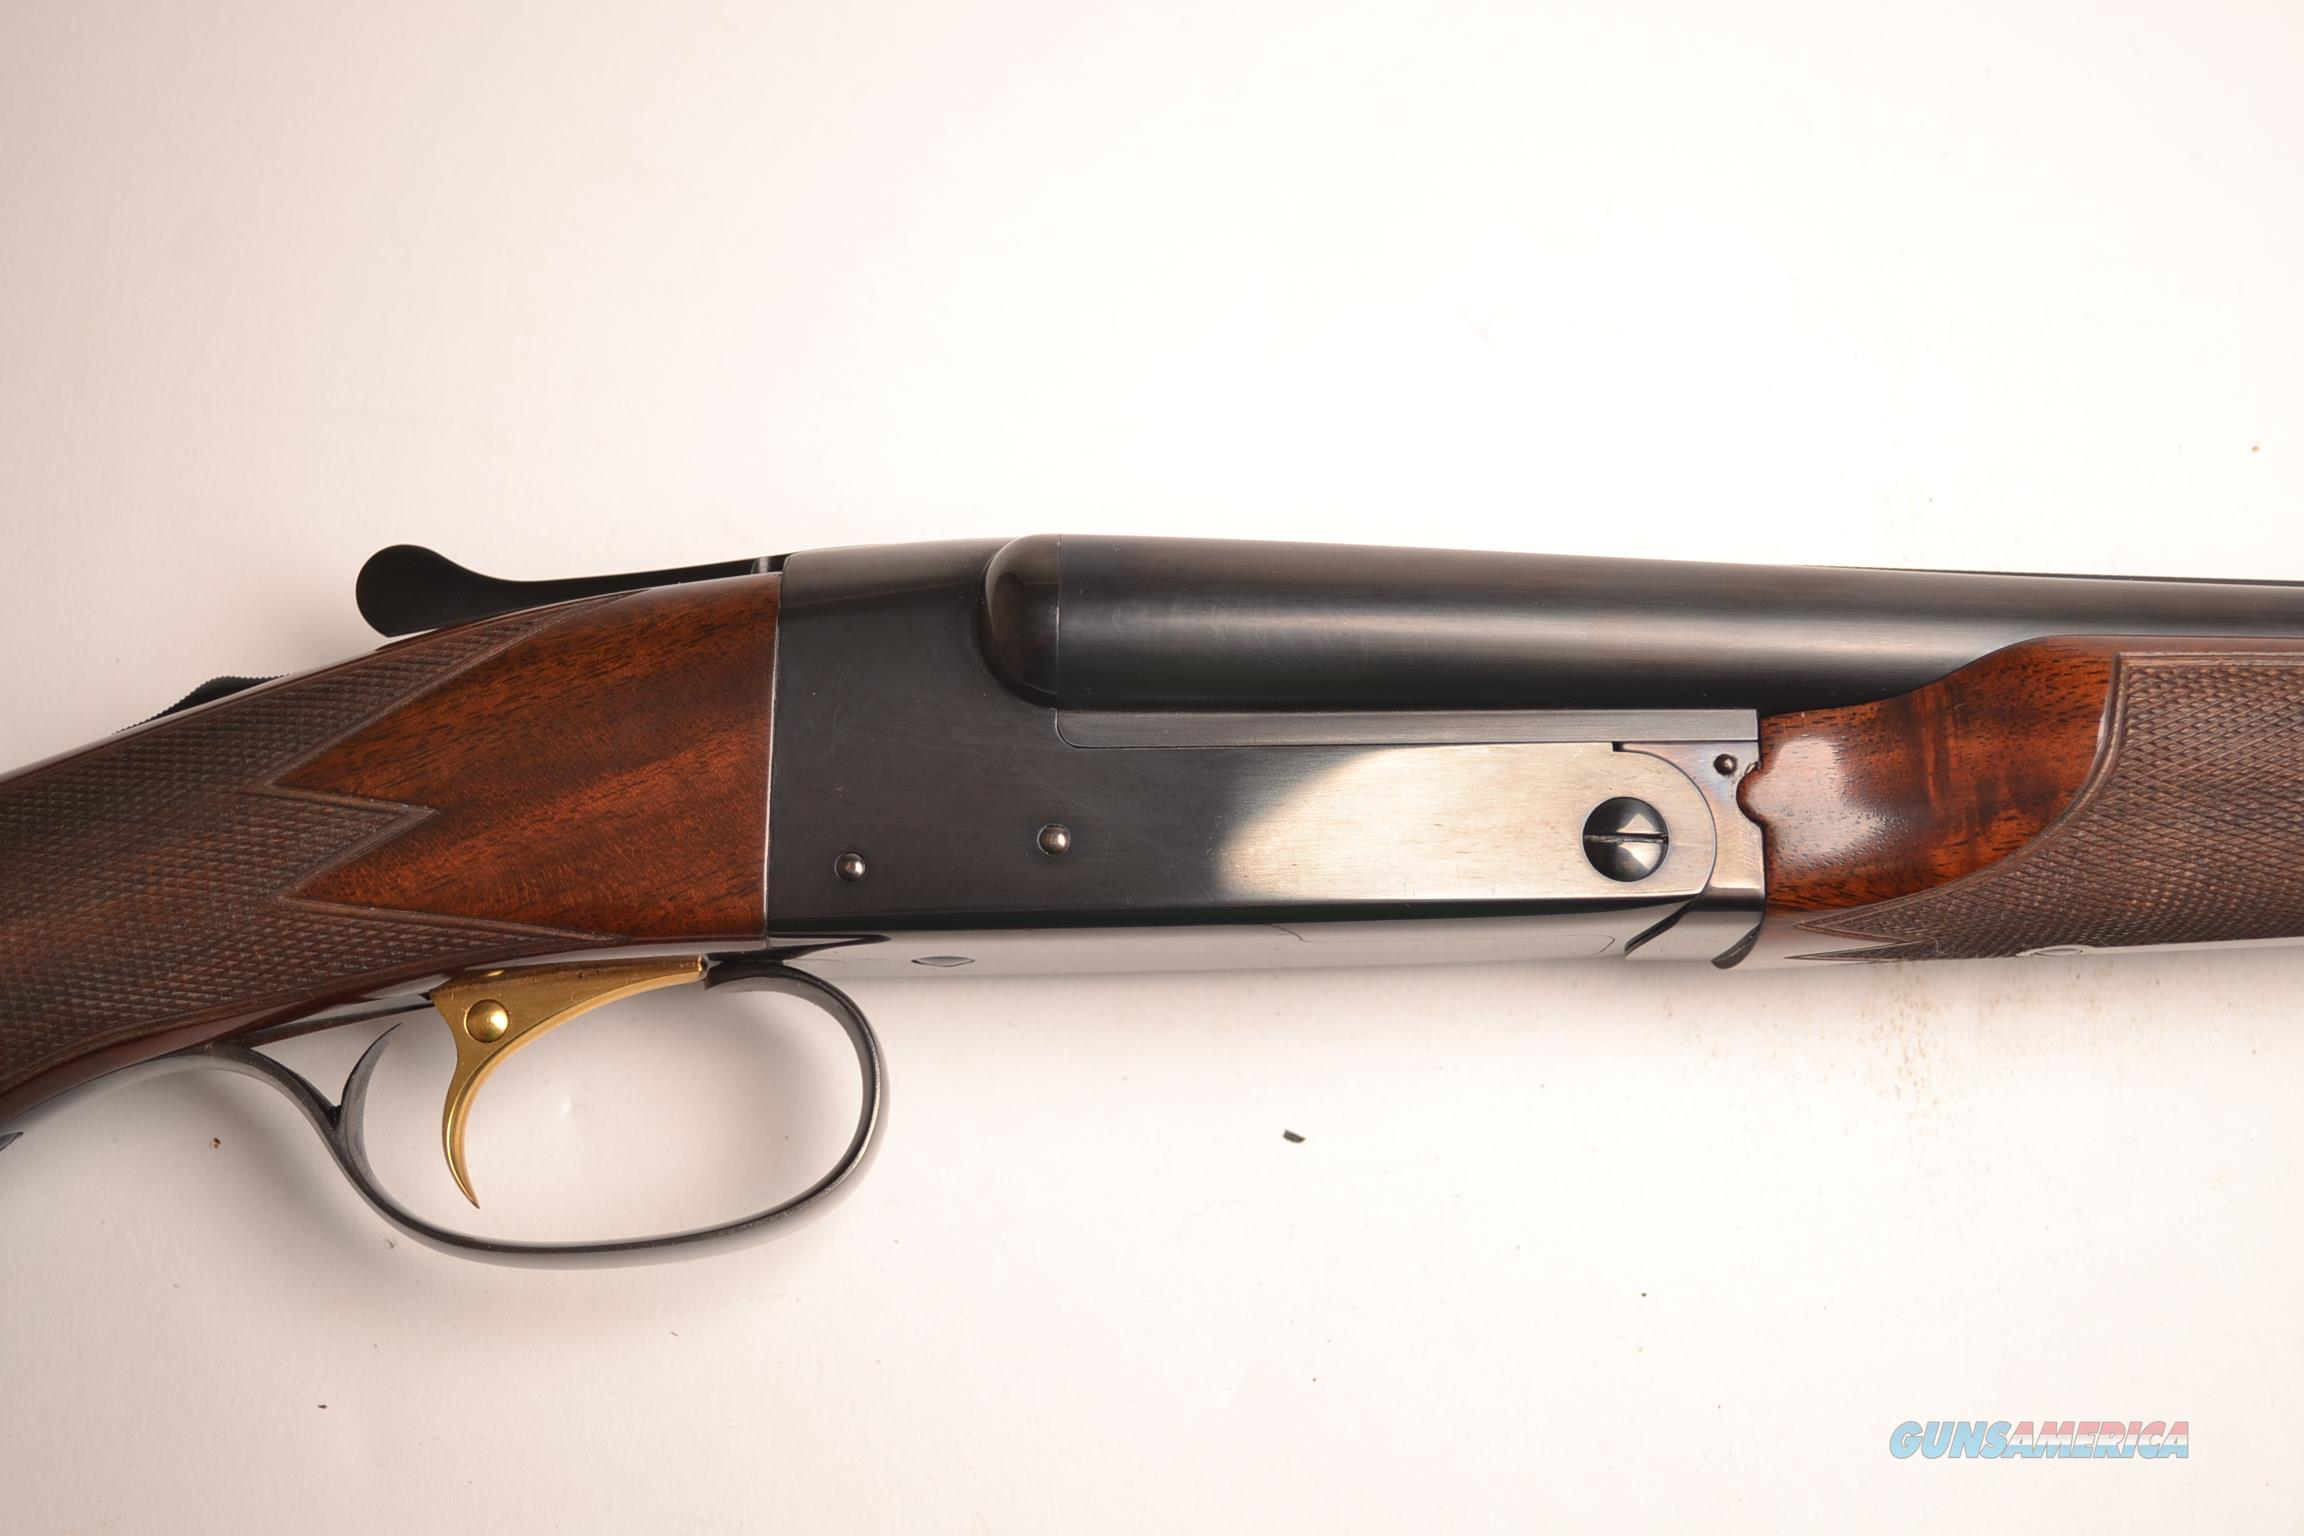 CSMC - Model 21, 20ga.  Guns > Shotguns > Connecticut (Galazan) Shotguns